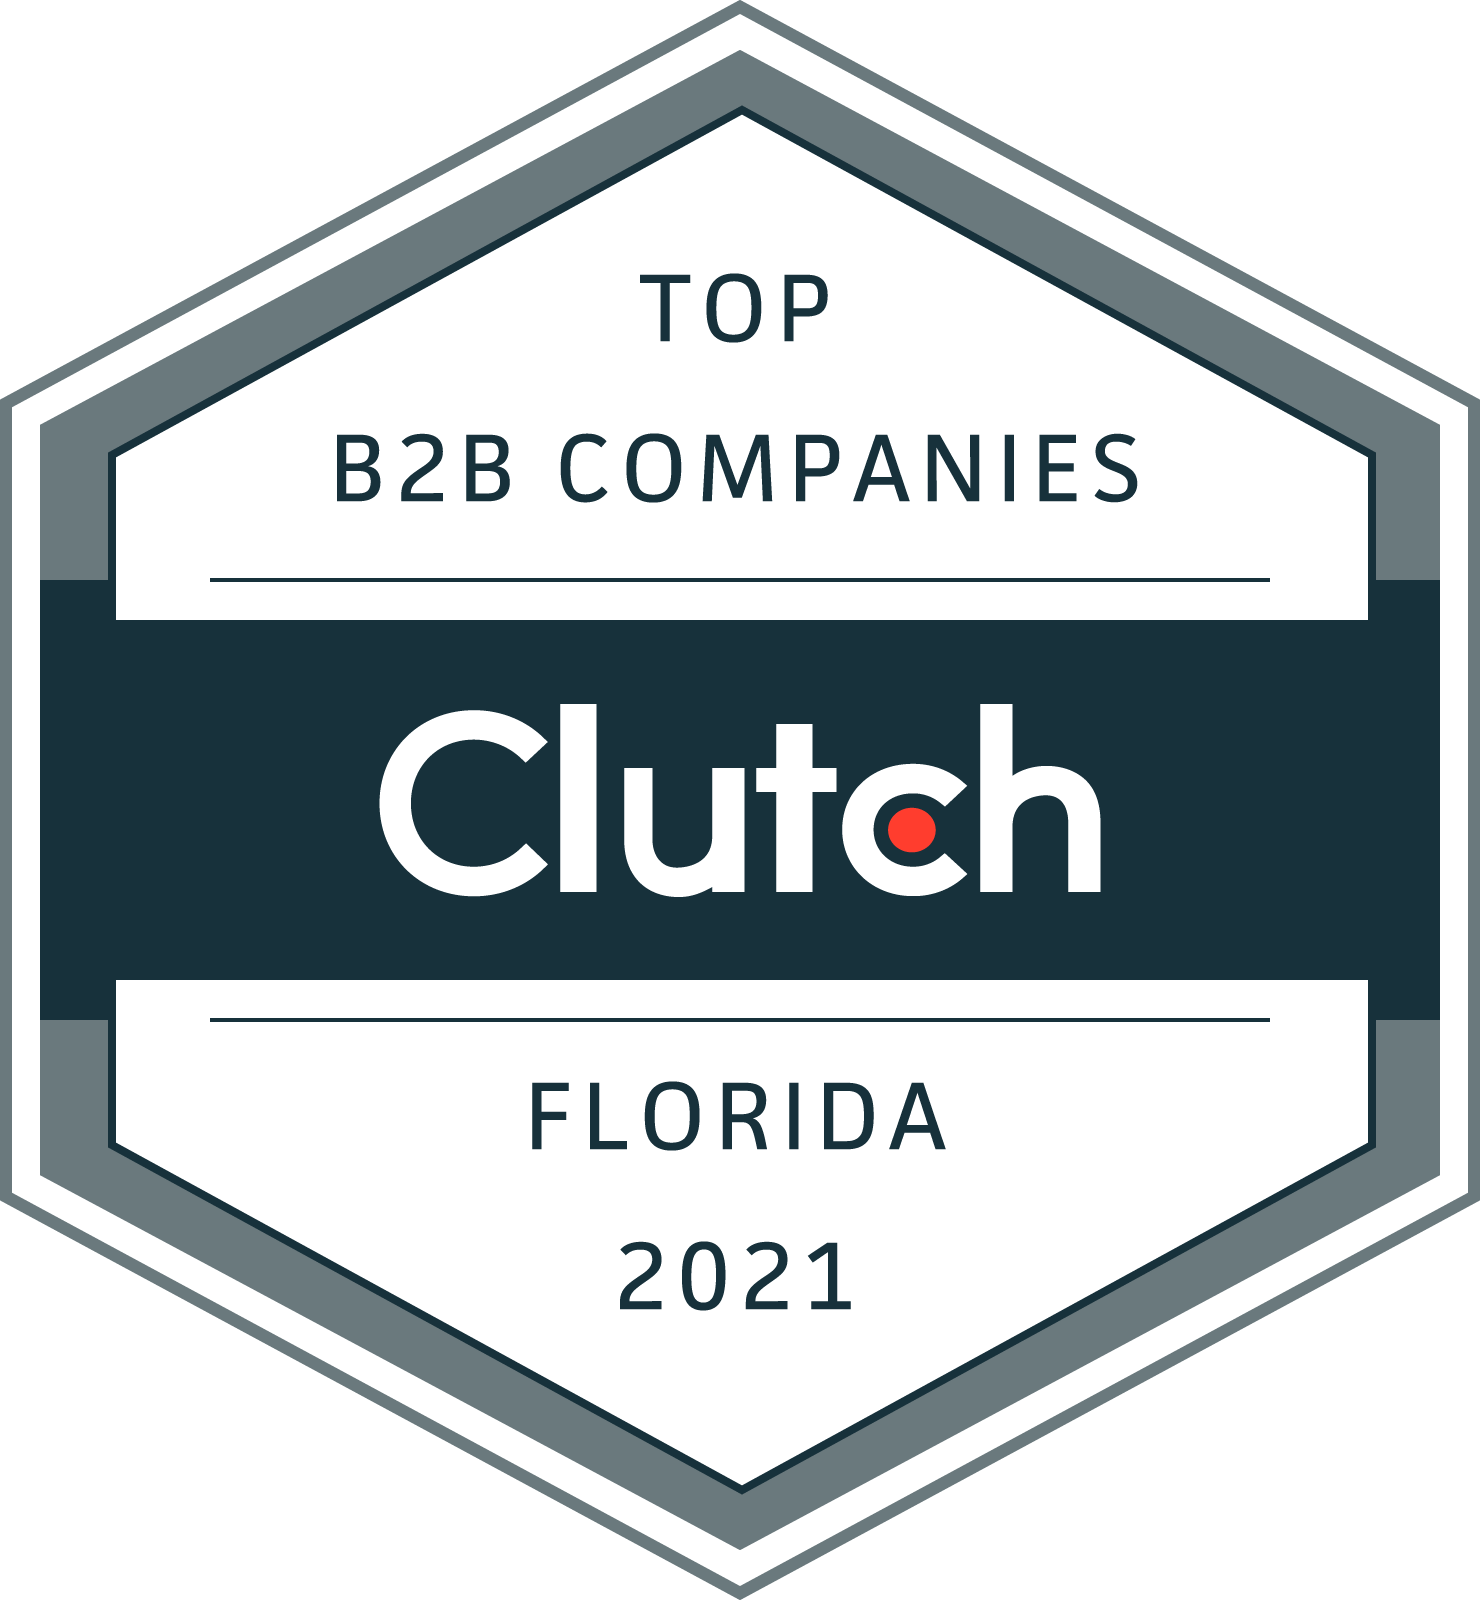 Clutch badge for Florida's top B2B firms